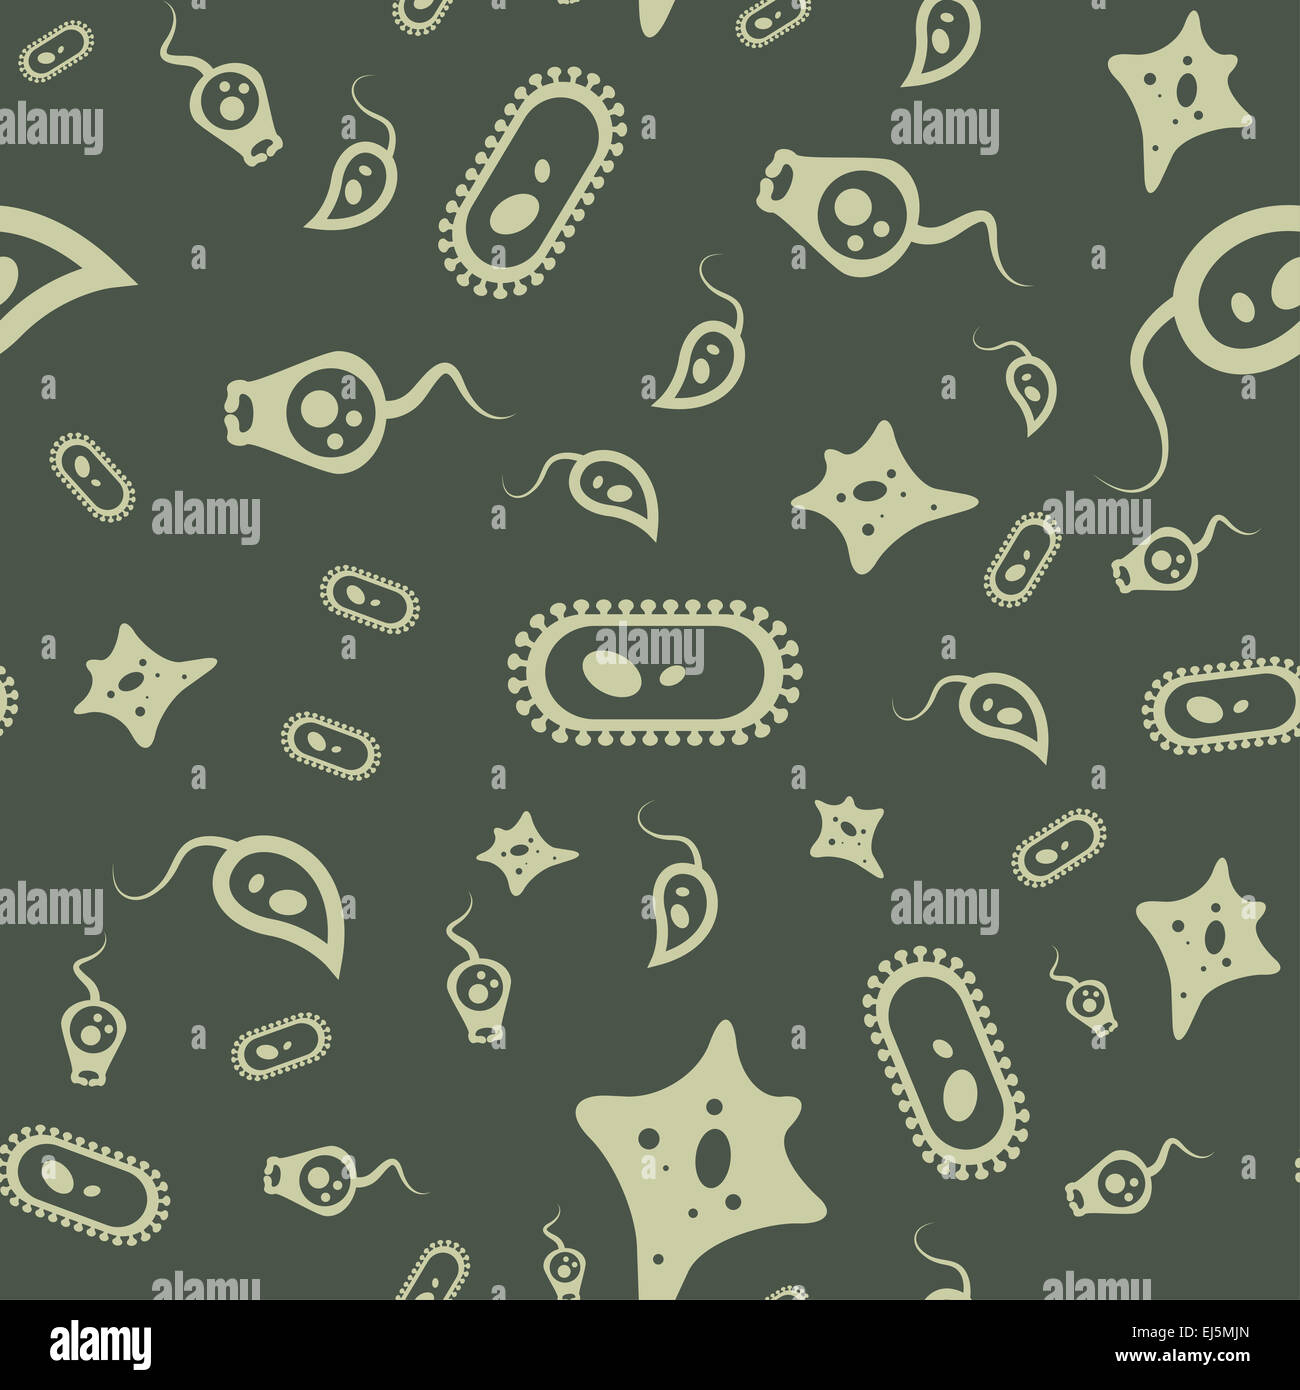 Vector image of a Bacterium seamless pattern - Stock Image